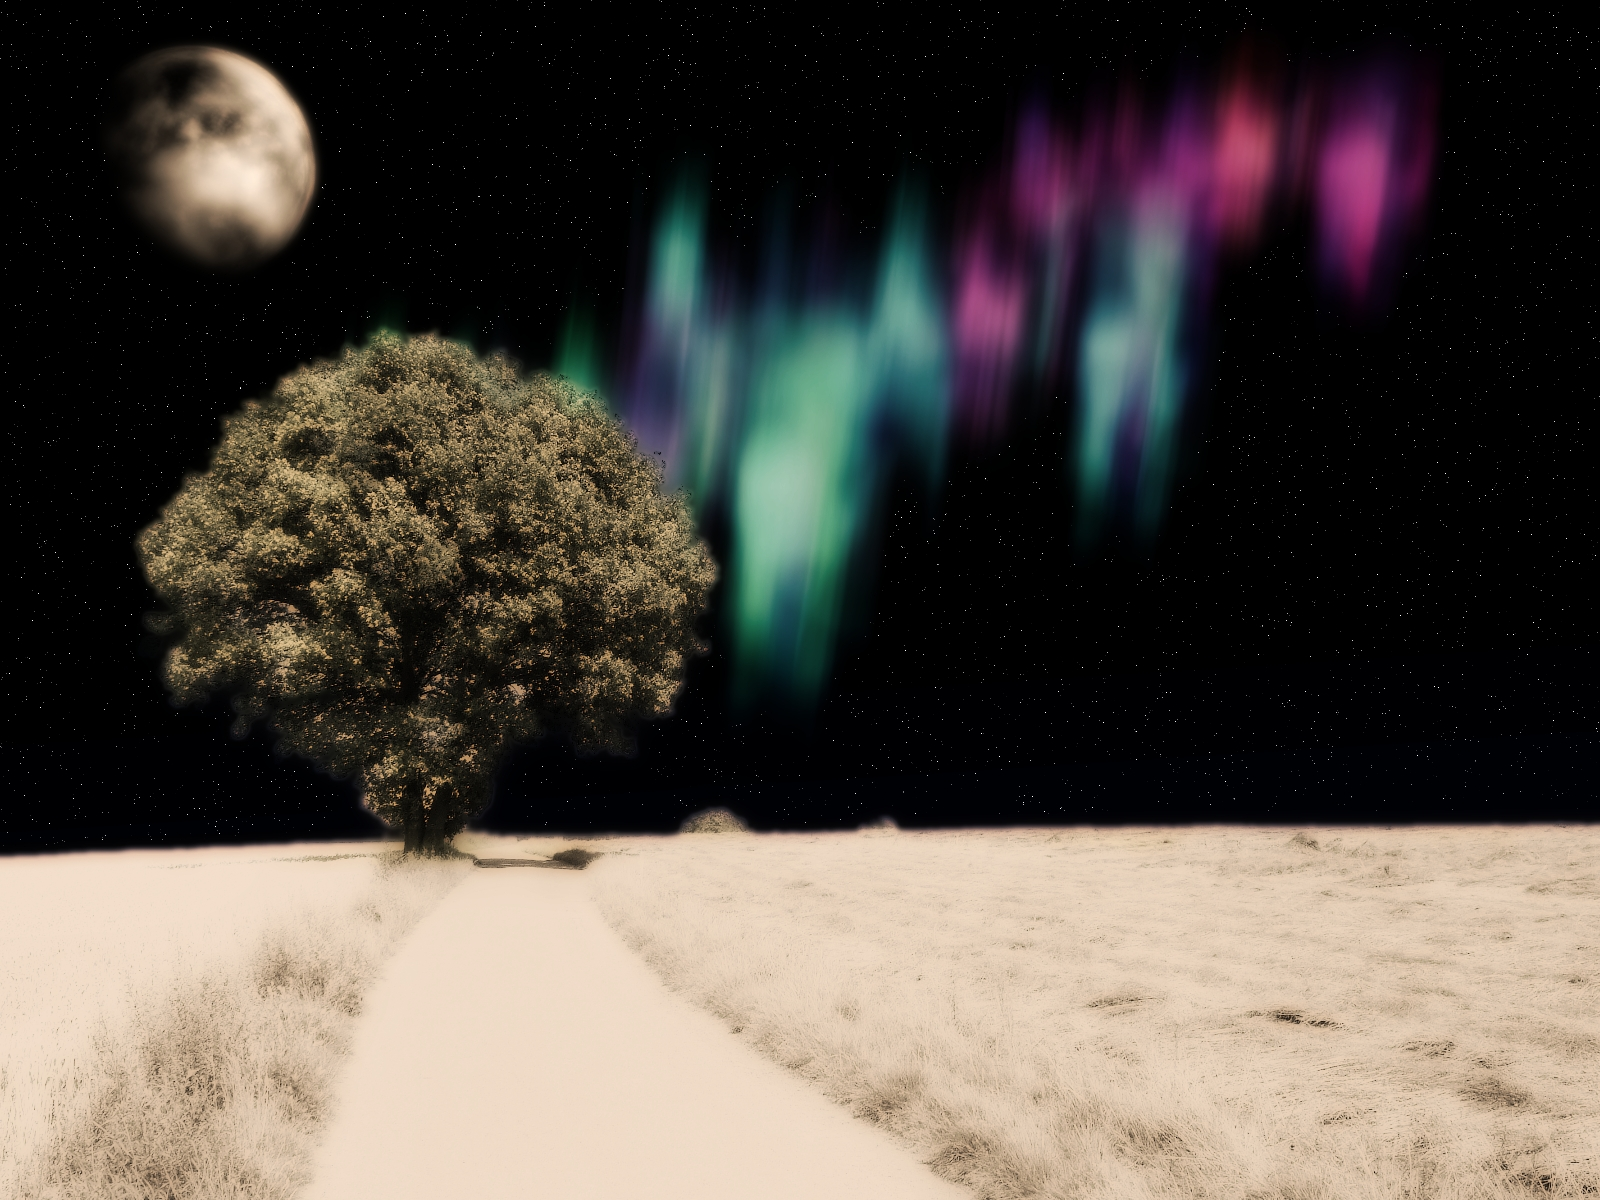 Arctic Tree - Photomanip Entry